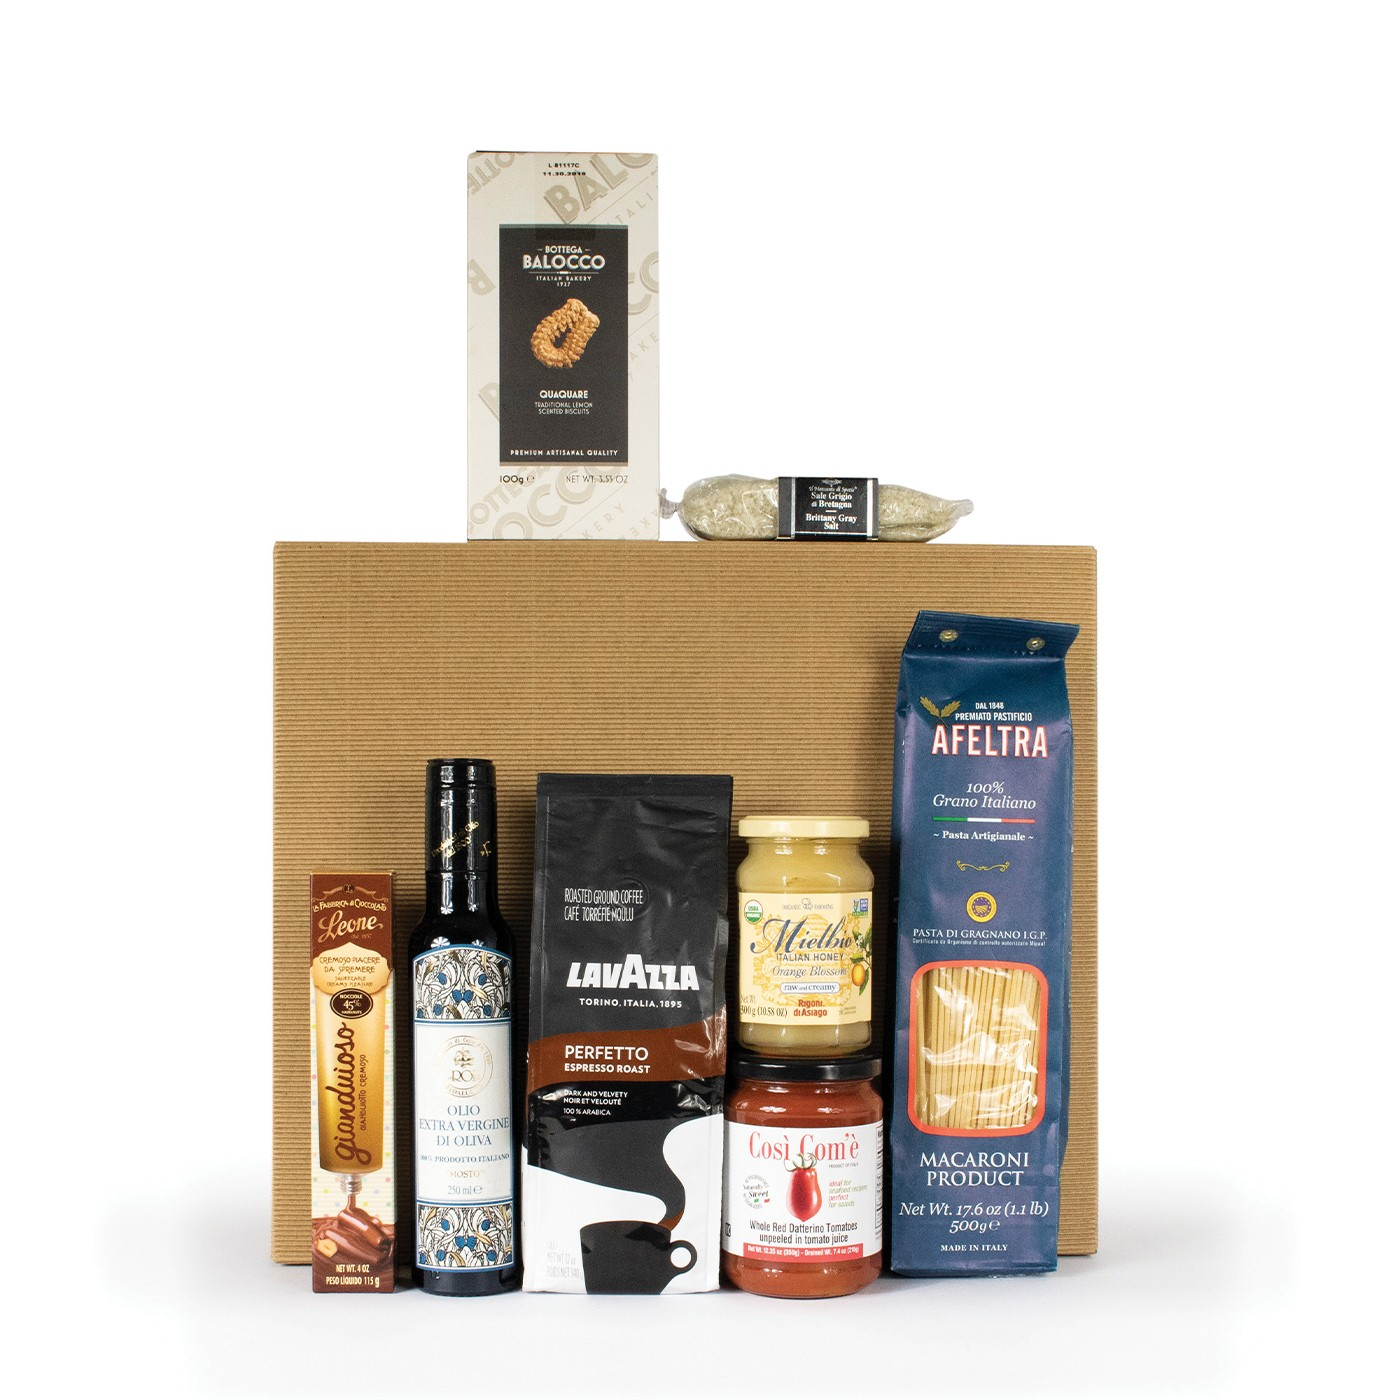 Italian food gift basket: iconic products